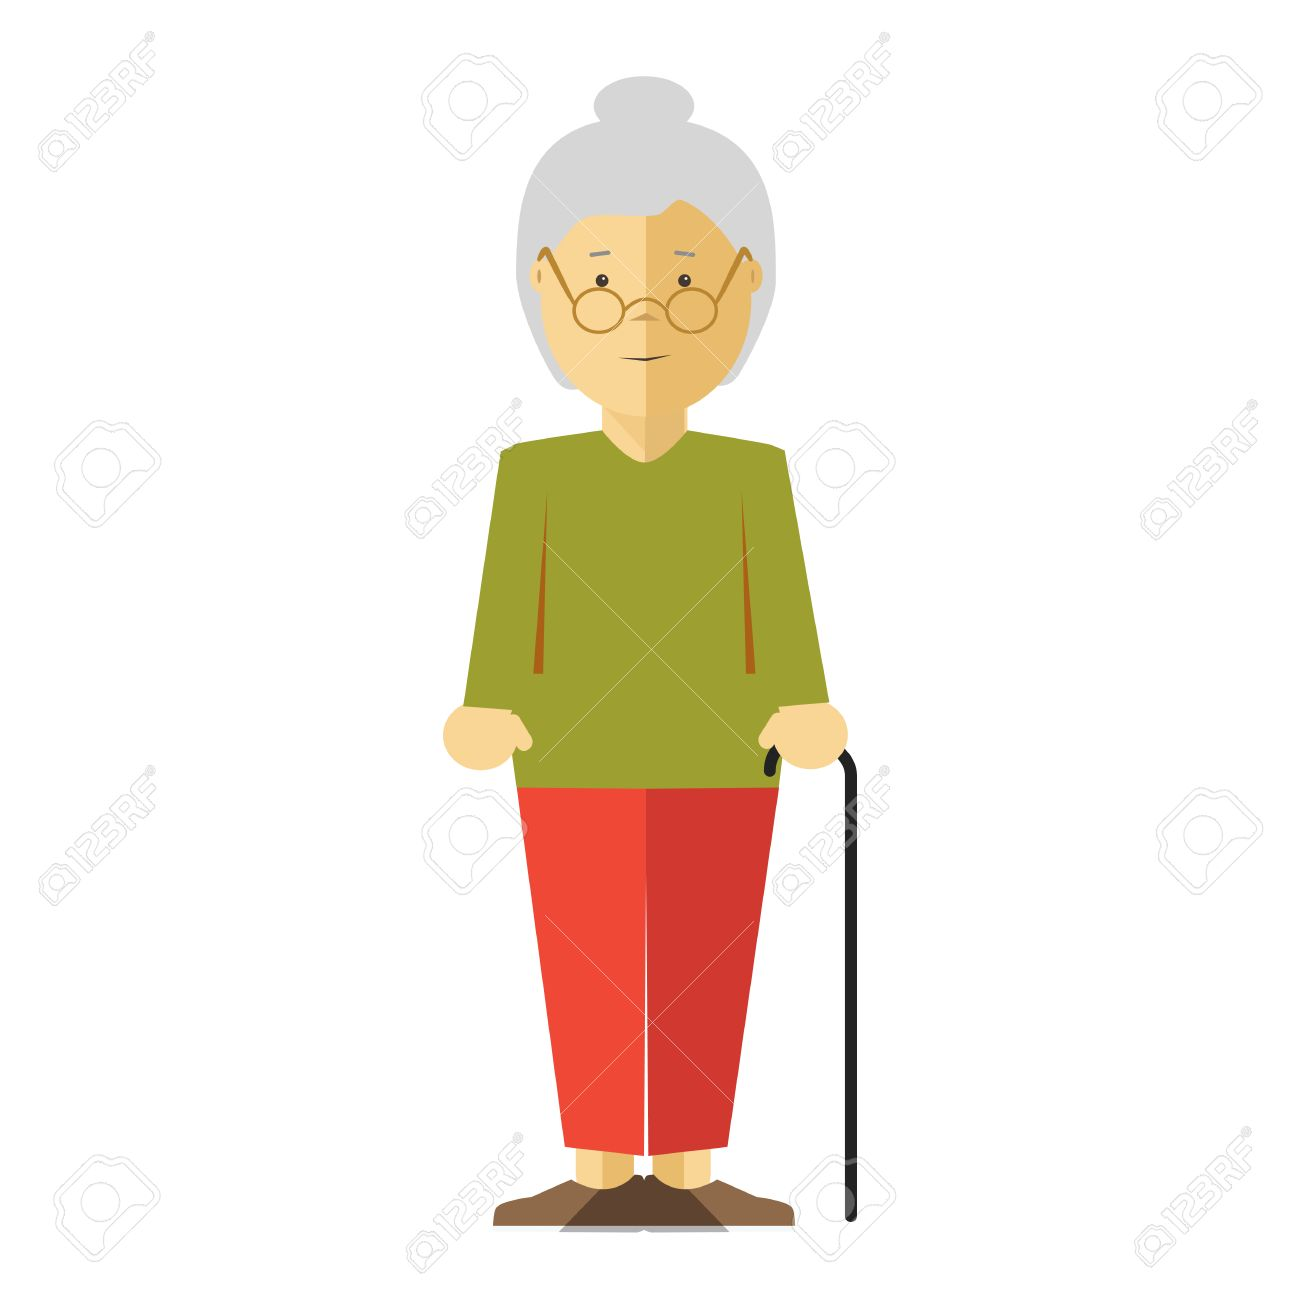 old lady or grandmother icon of elderly female person with smile rh 123rf com old lady cartoon character with tissues old lady cartoon character names